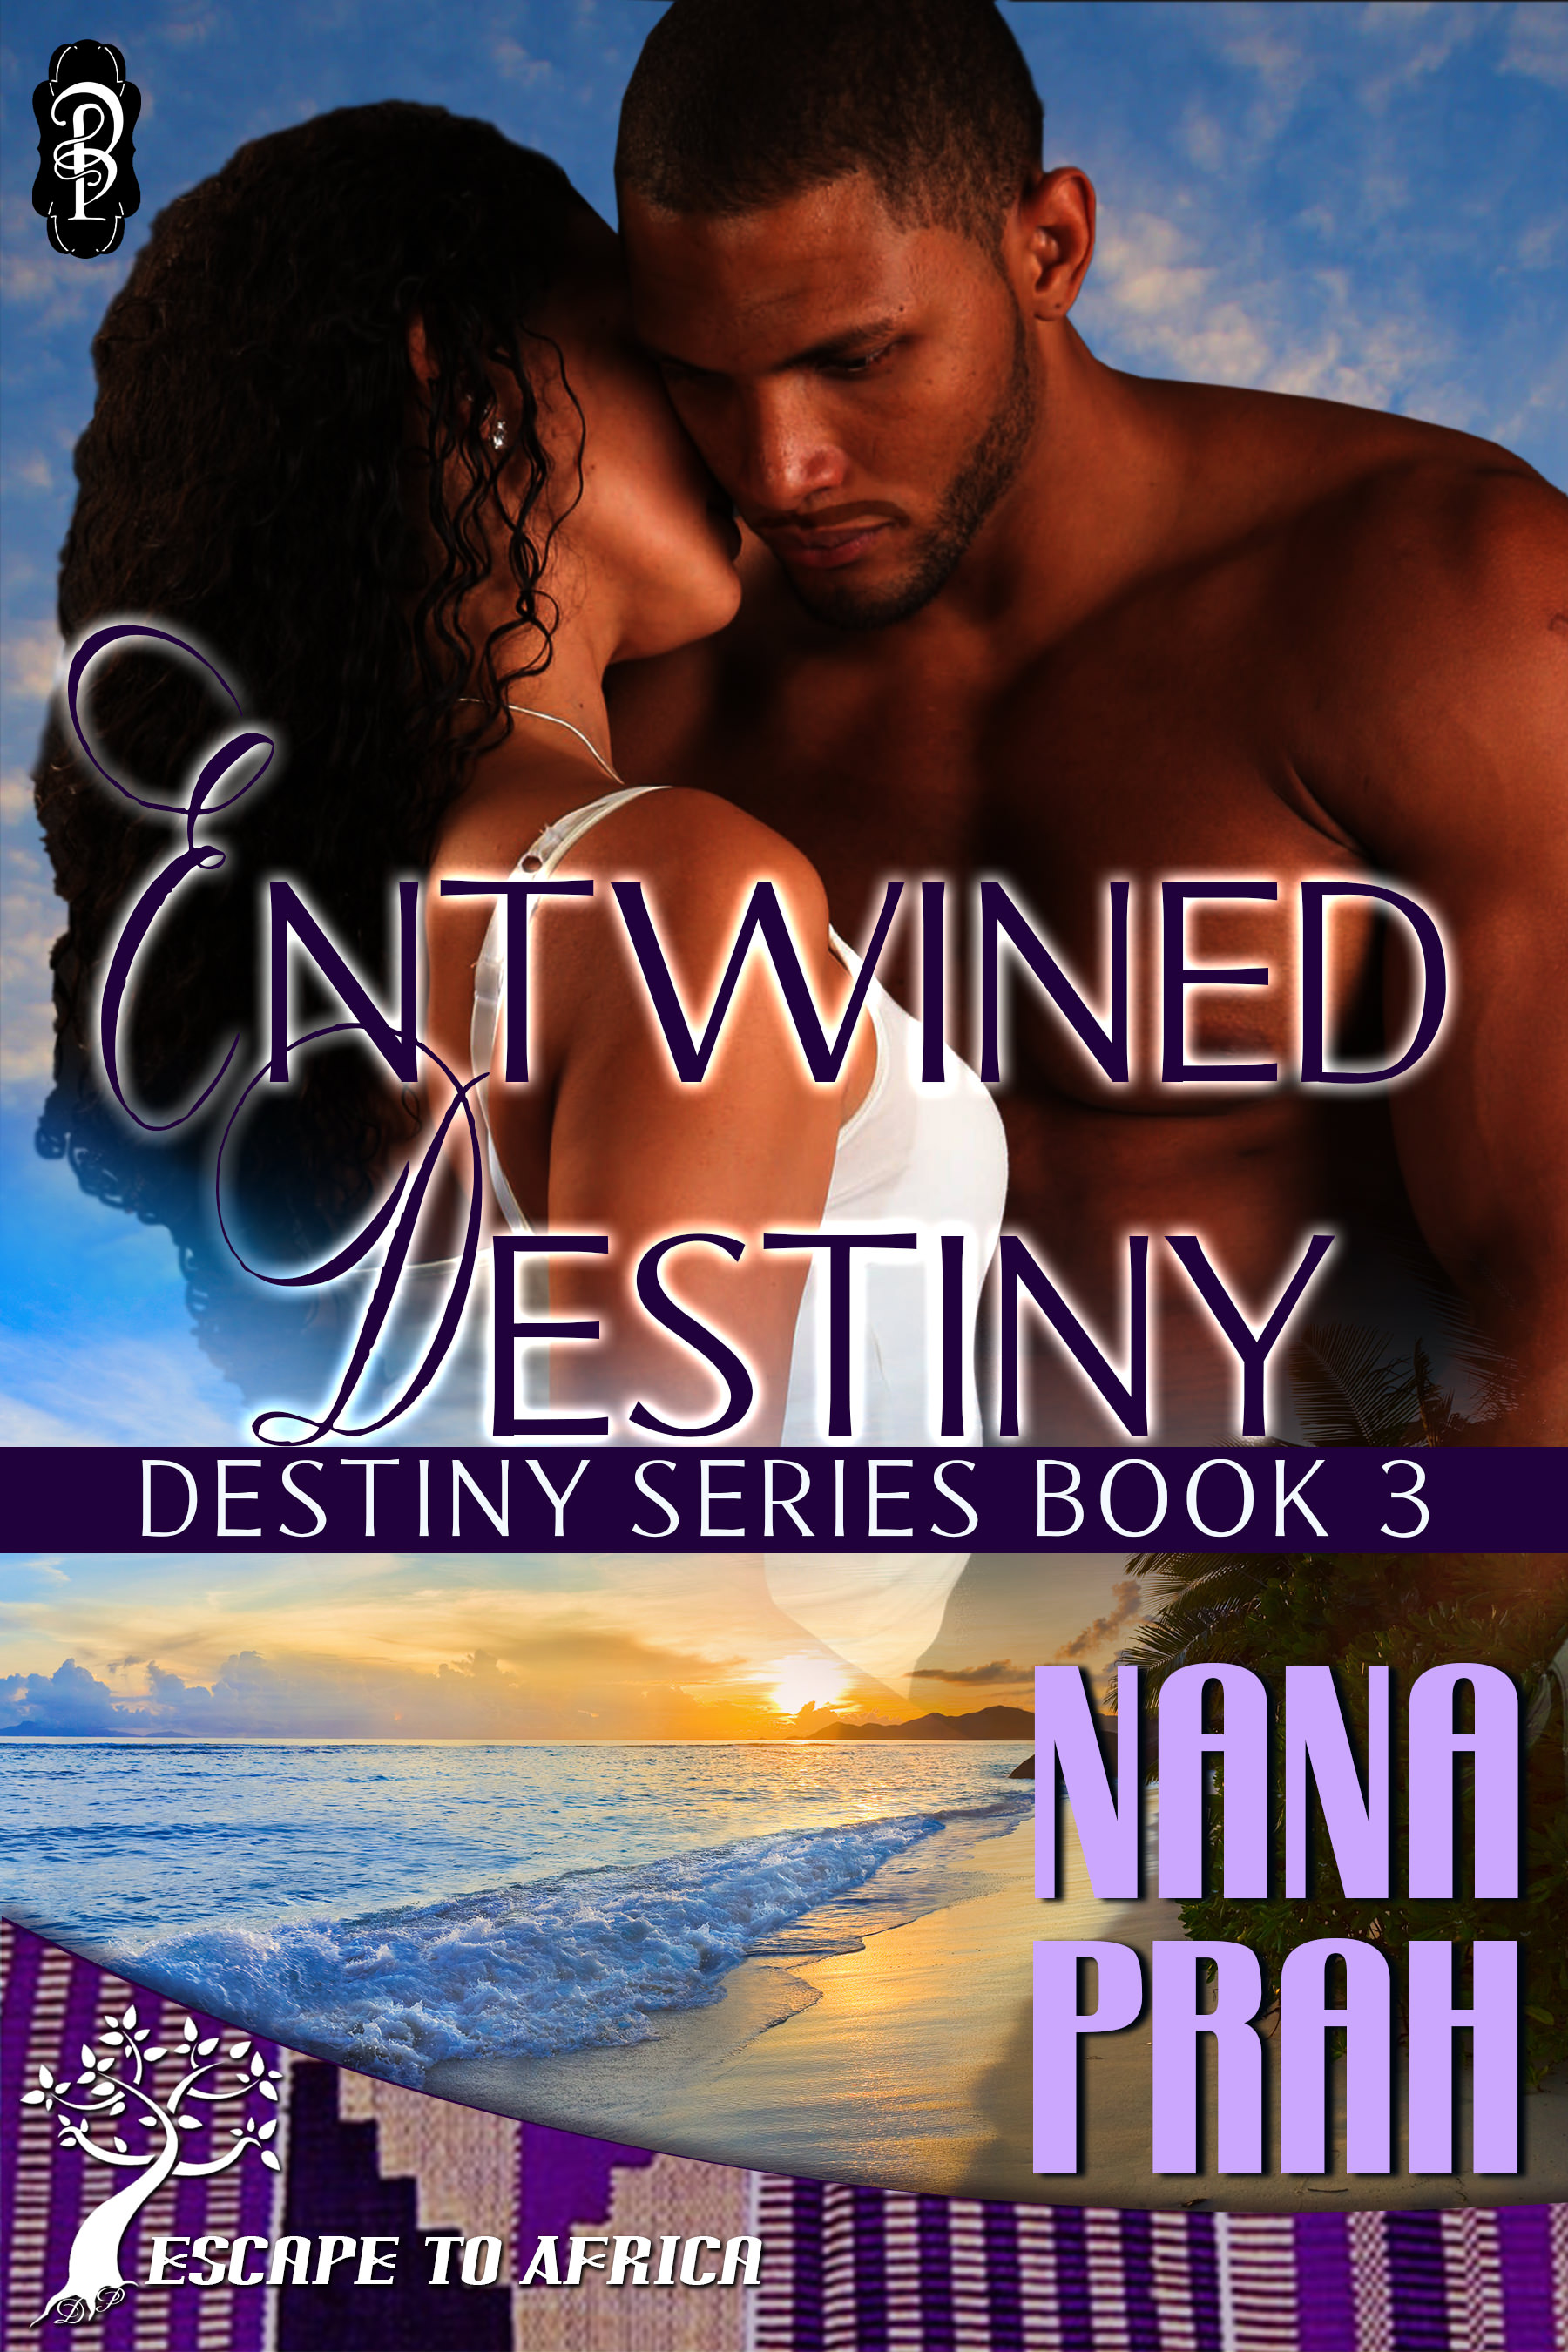 Entwined Destiny